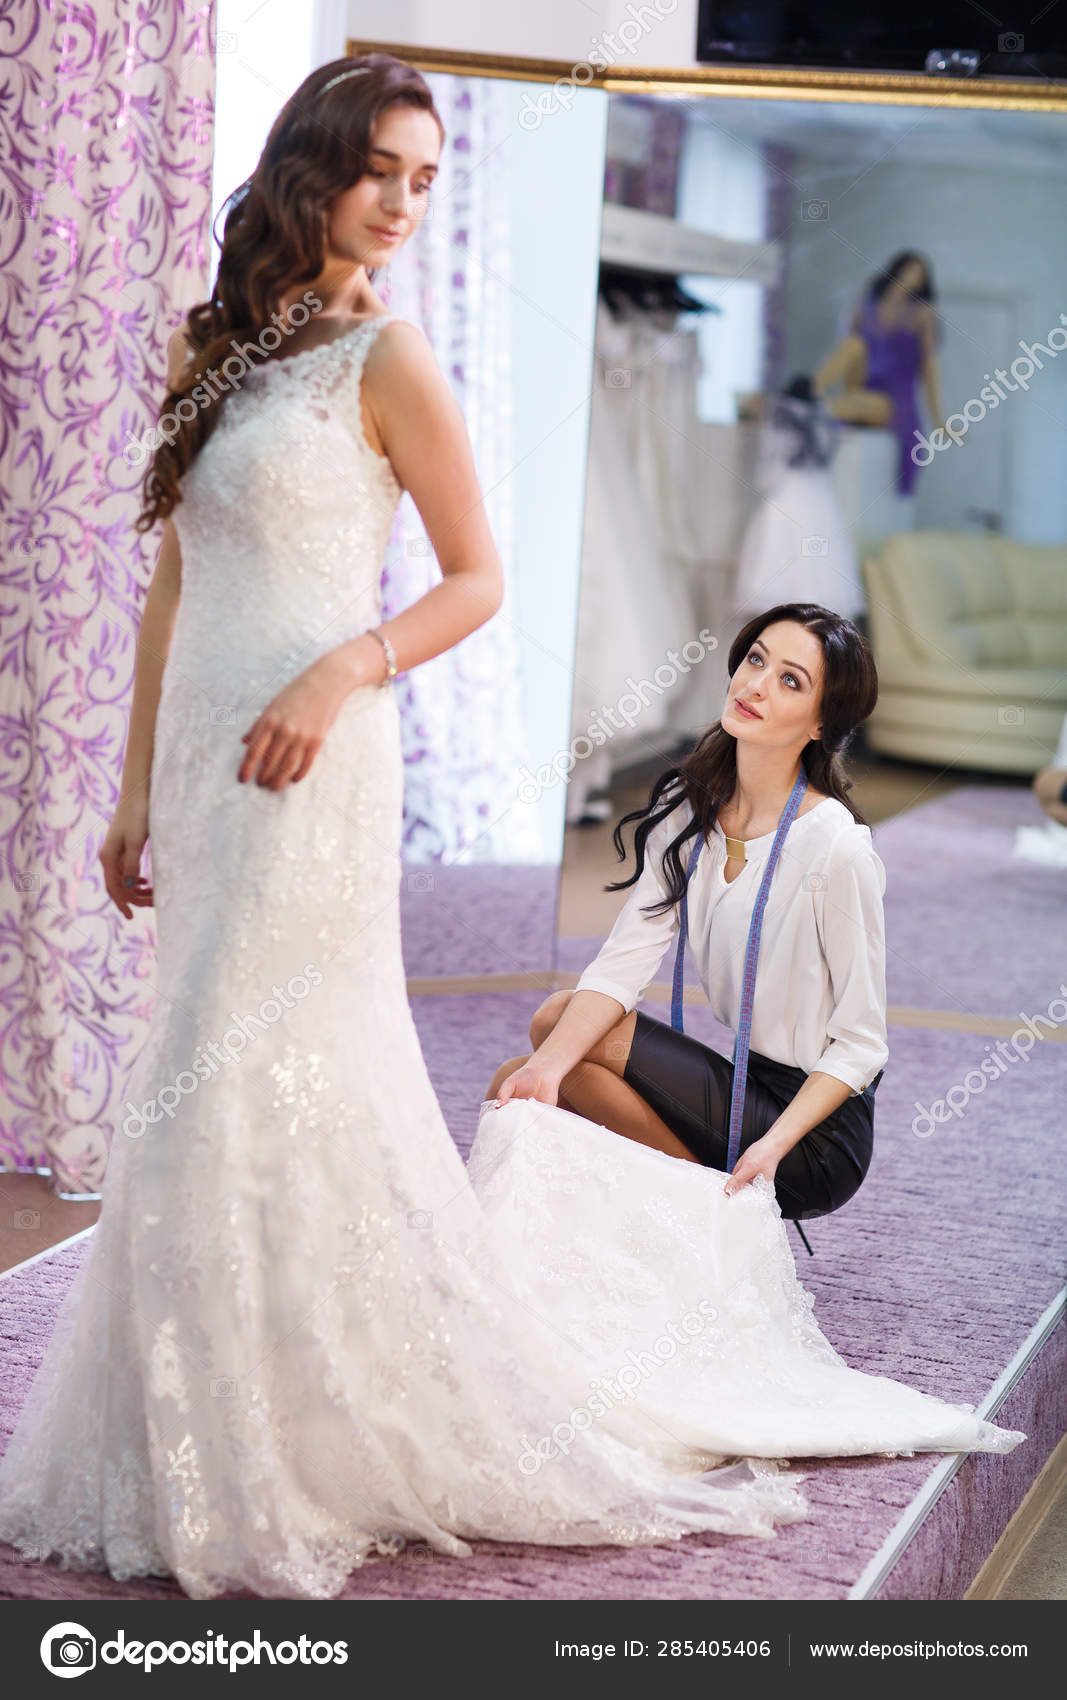 Female Trying On Wedding Dress In A Shop With Women